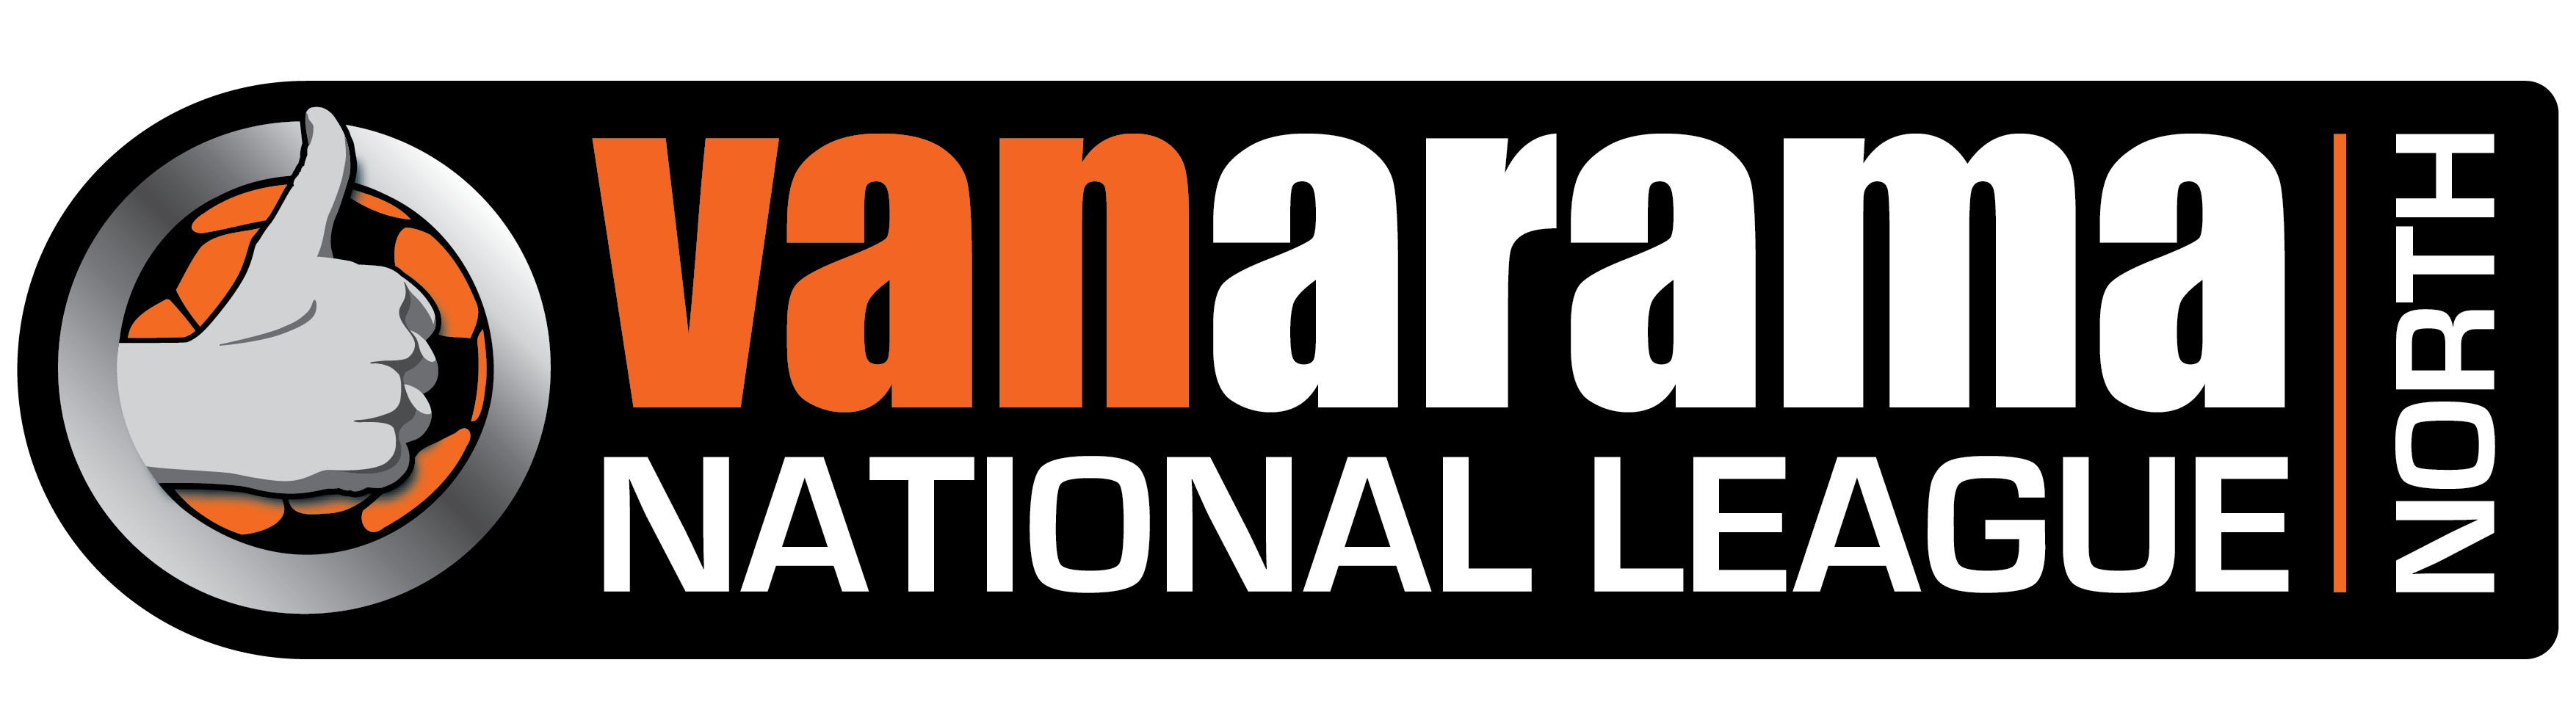 http://vignette4.wikia.nocookie.net/logopedia/images/5/52/Vanarama_National_League_North_logo.png/revision/latest?cb=20151114204748